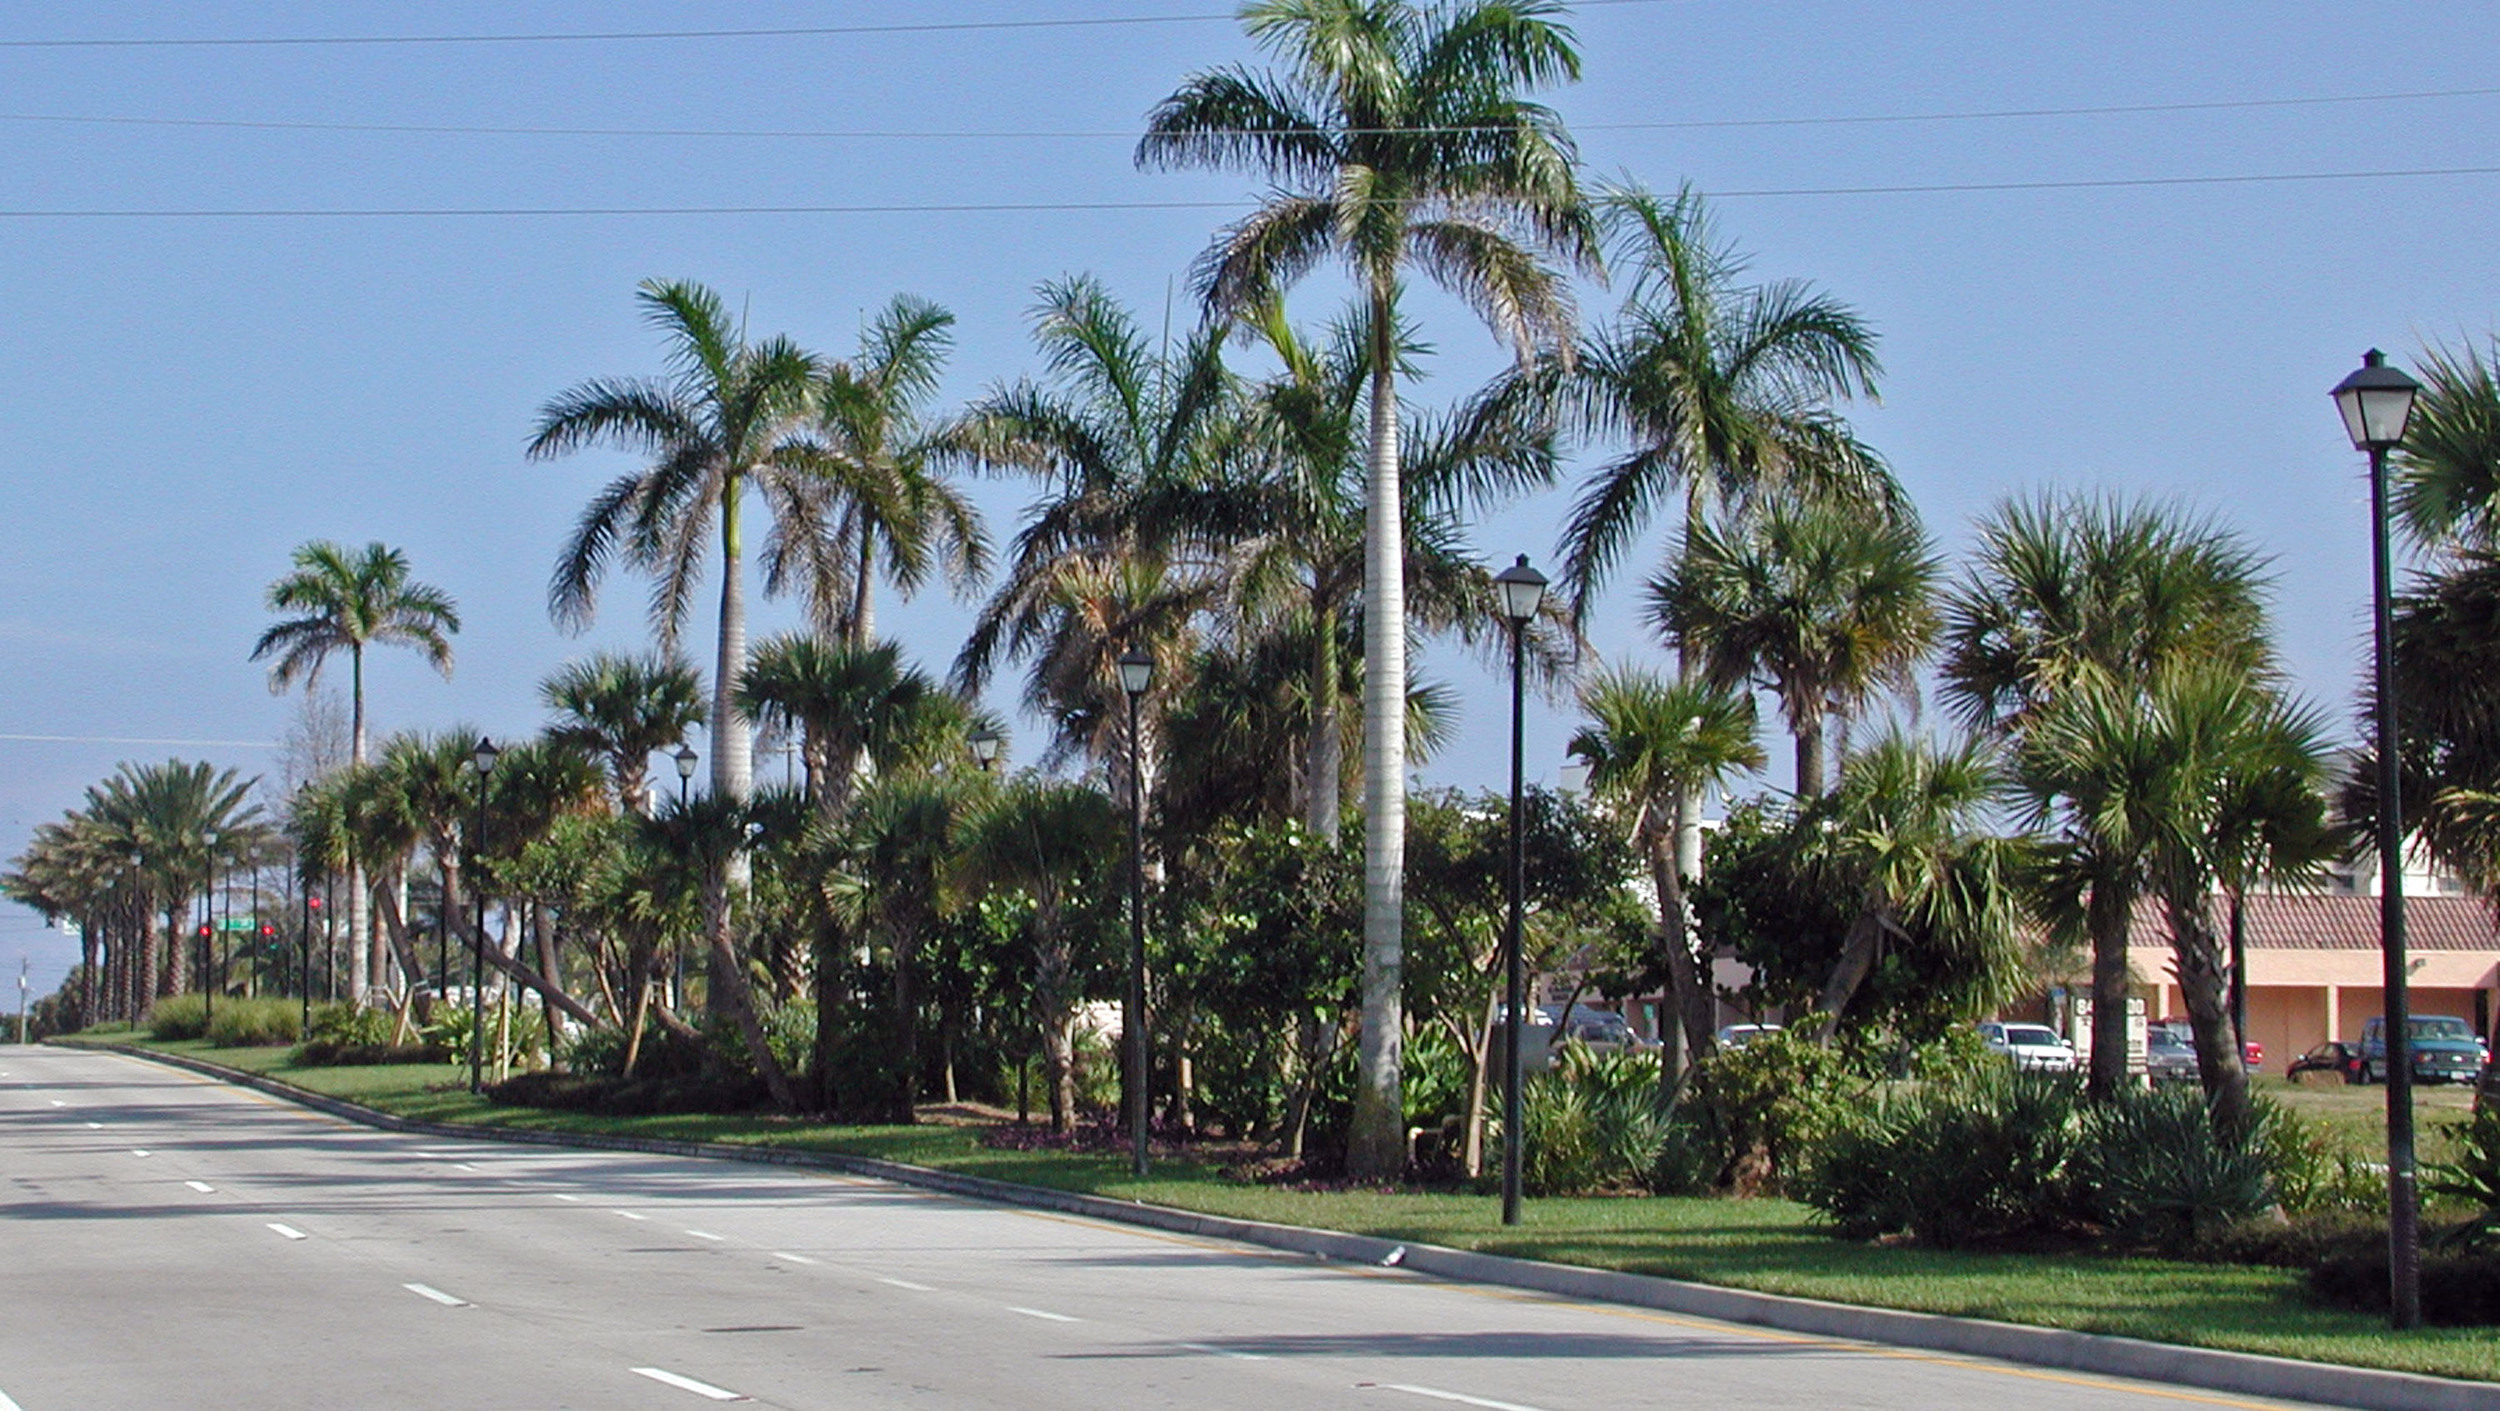 Donald Ross Road Palm Beach County Florida Landscape Informal Native Plantings.jpg